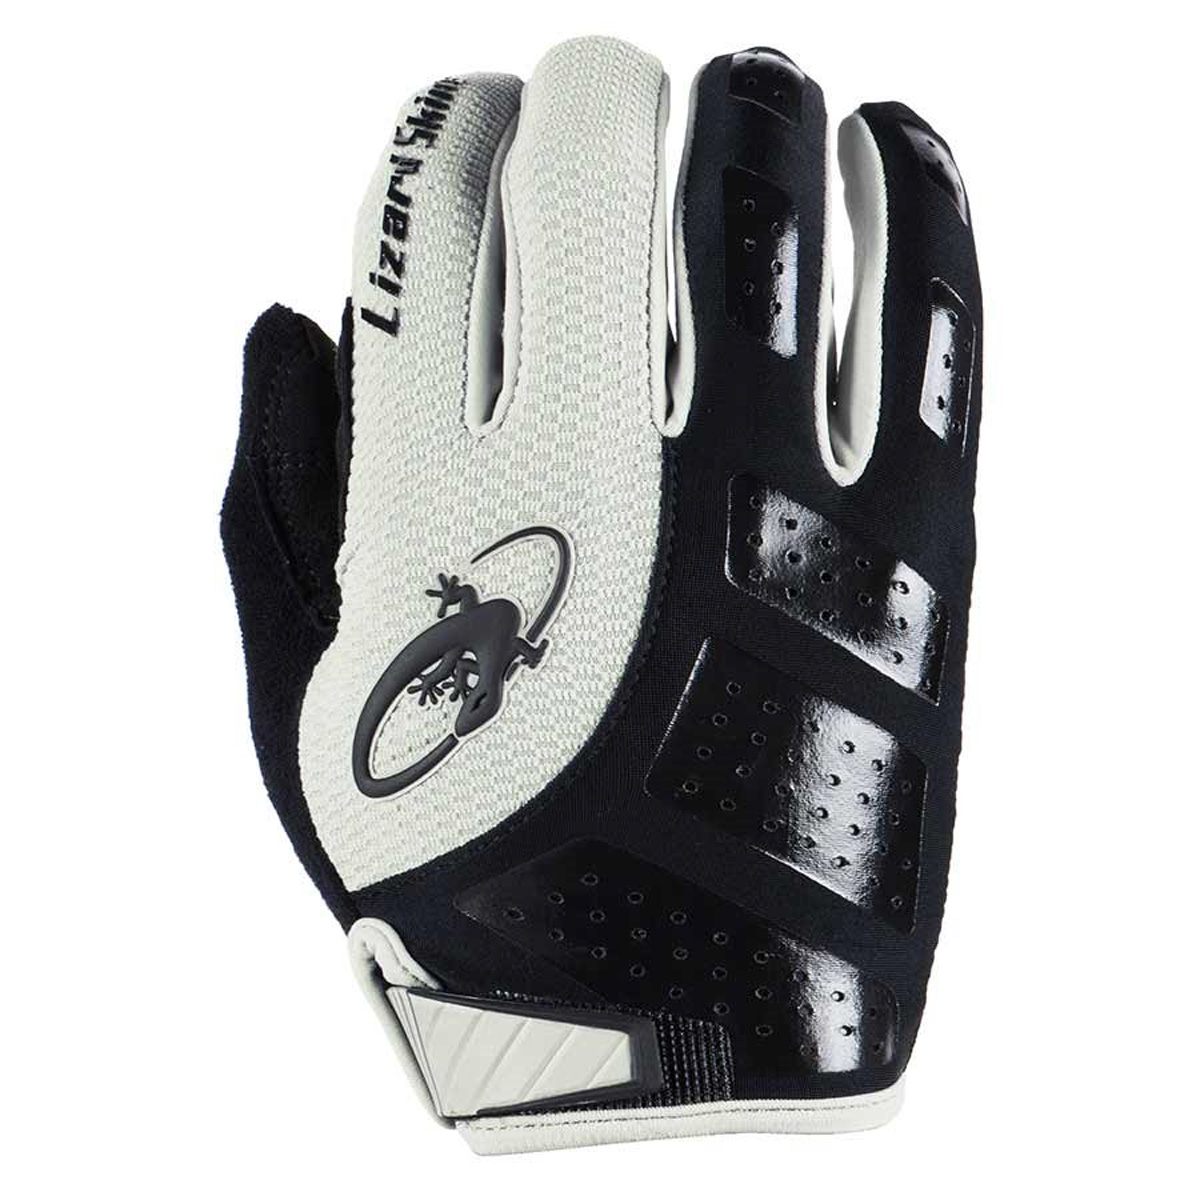 Lizard Skins, Monitor SL, Gloves, Long Fingers, Gray/Jet Black, M